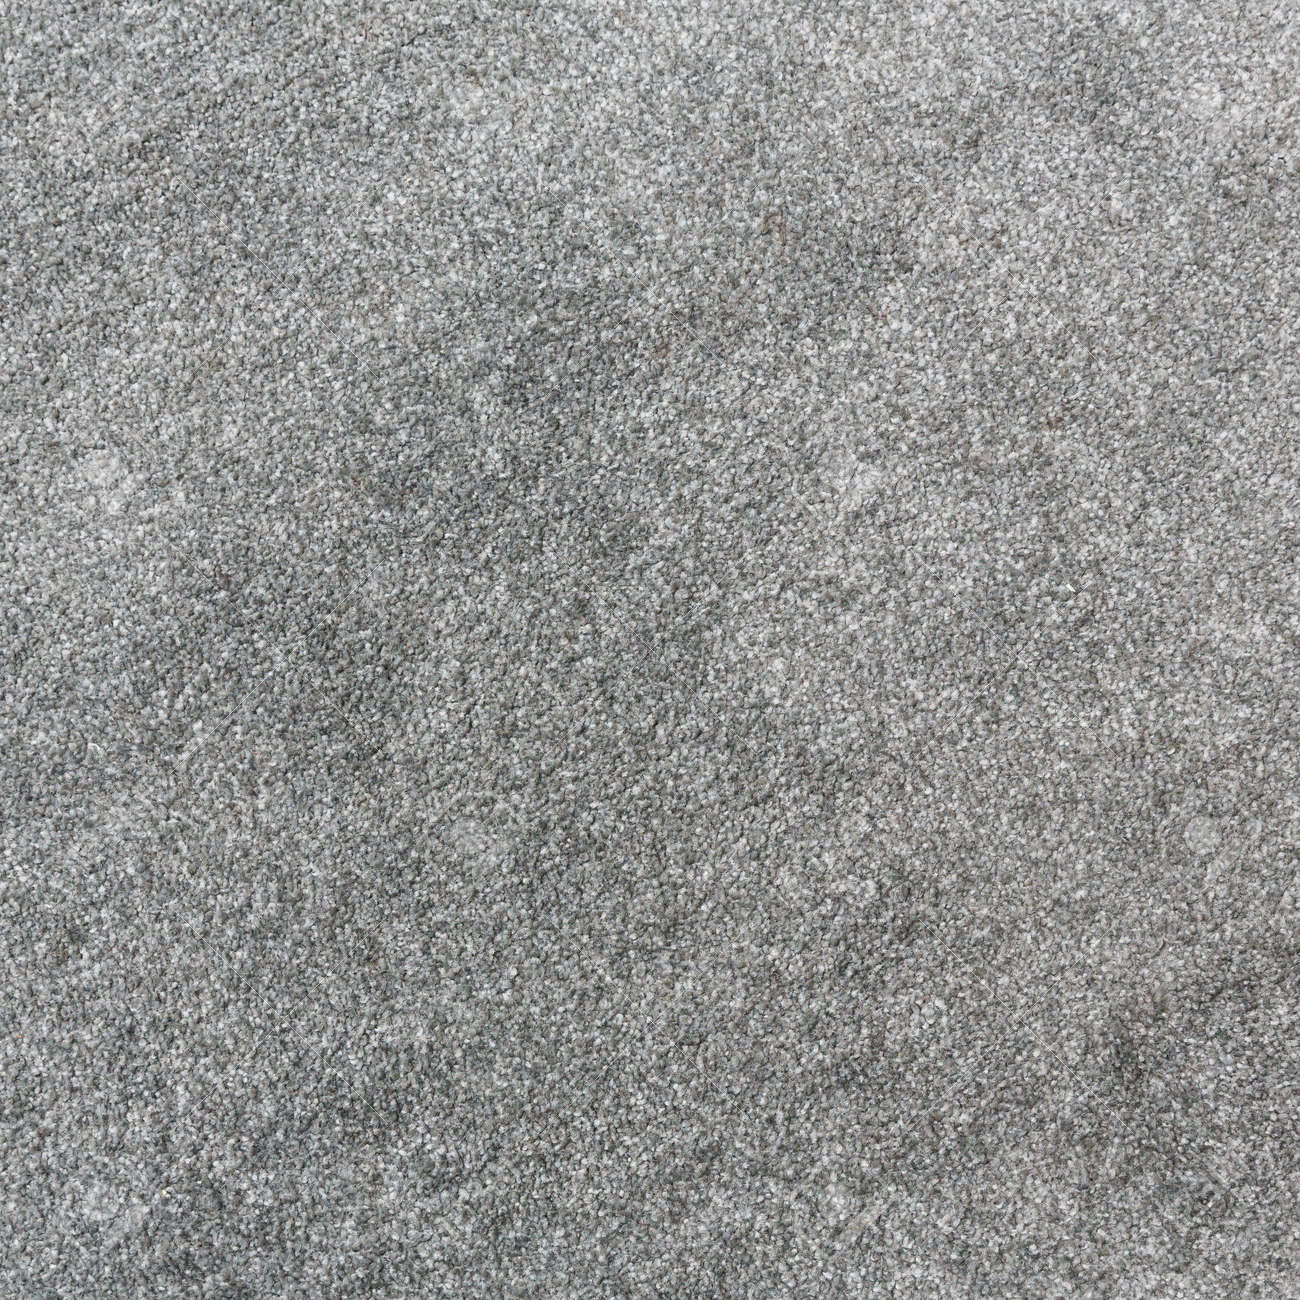 close up old and dirty gray color carpet texture stock photo 29786150